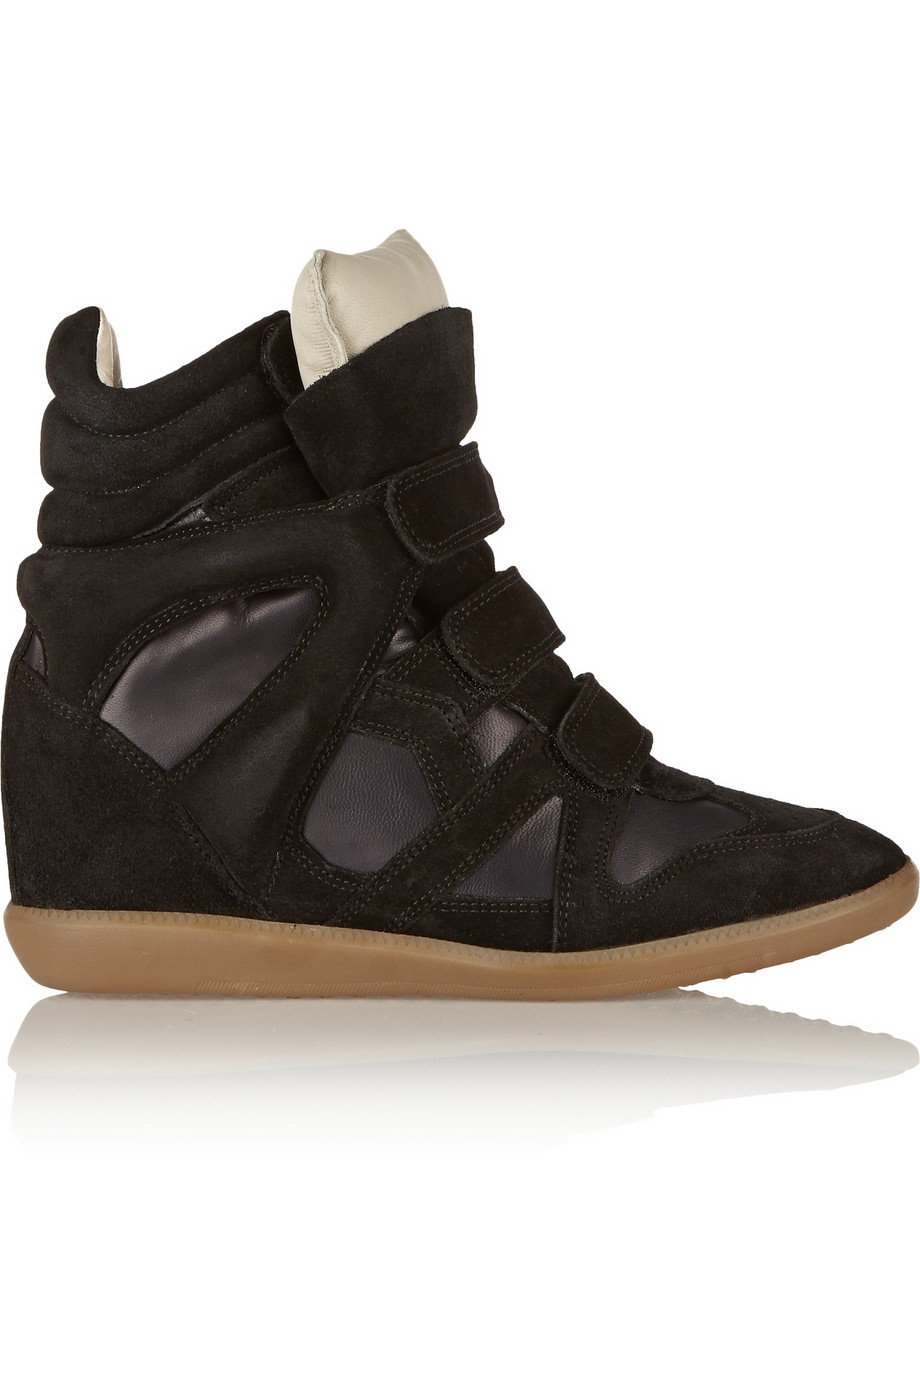 isabel marant burt suede and leather wedge sneakers in black lyst. Black Bedroom Furniture Sets. Home Design Ideas